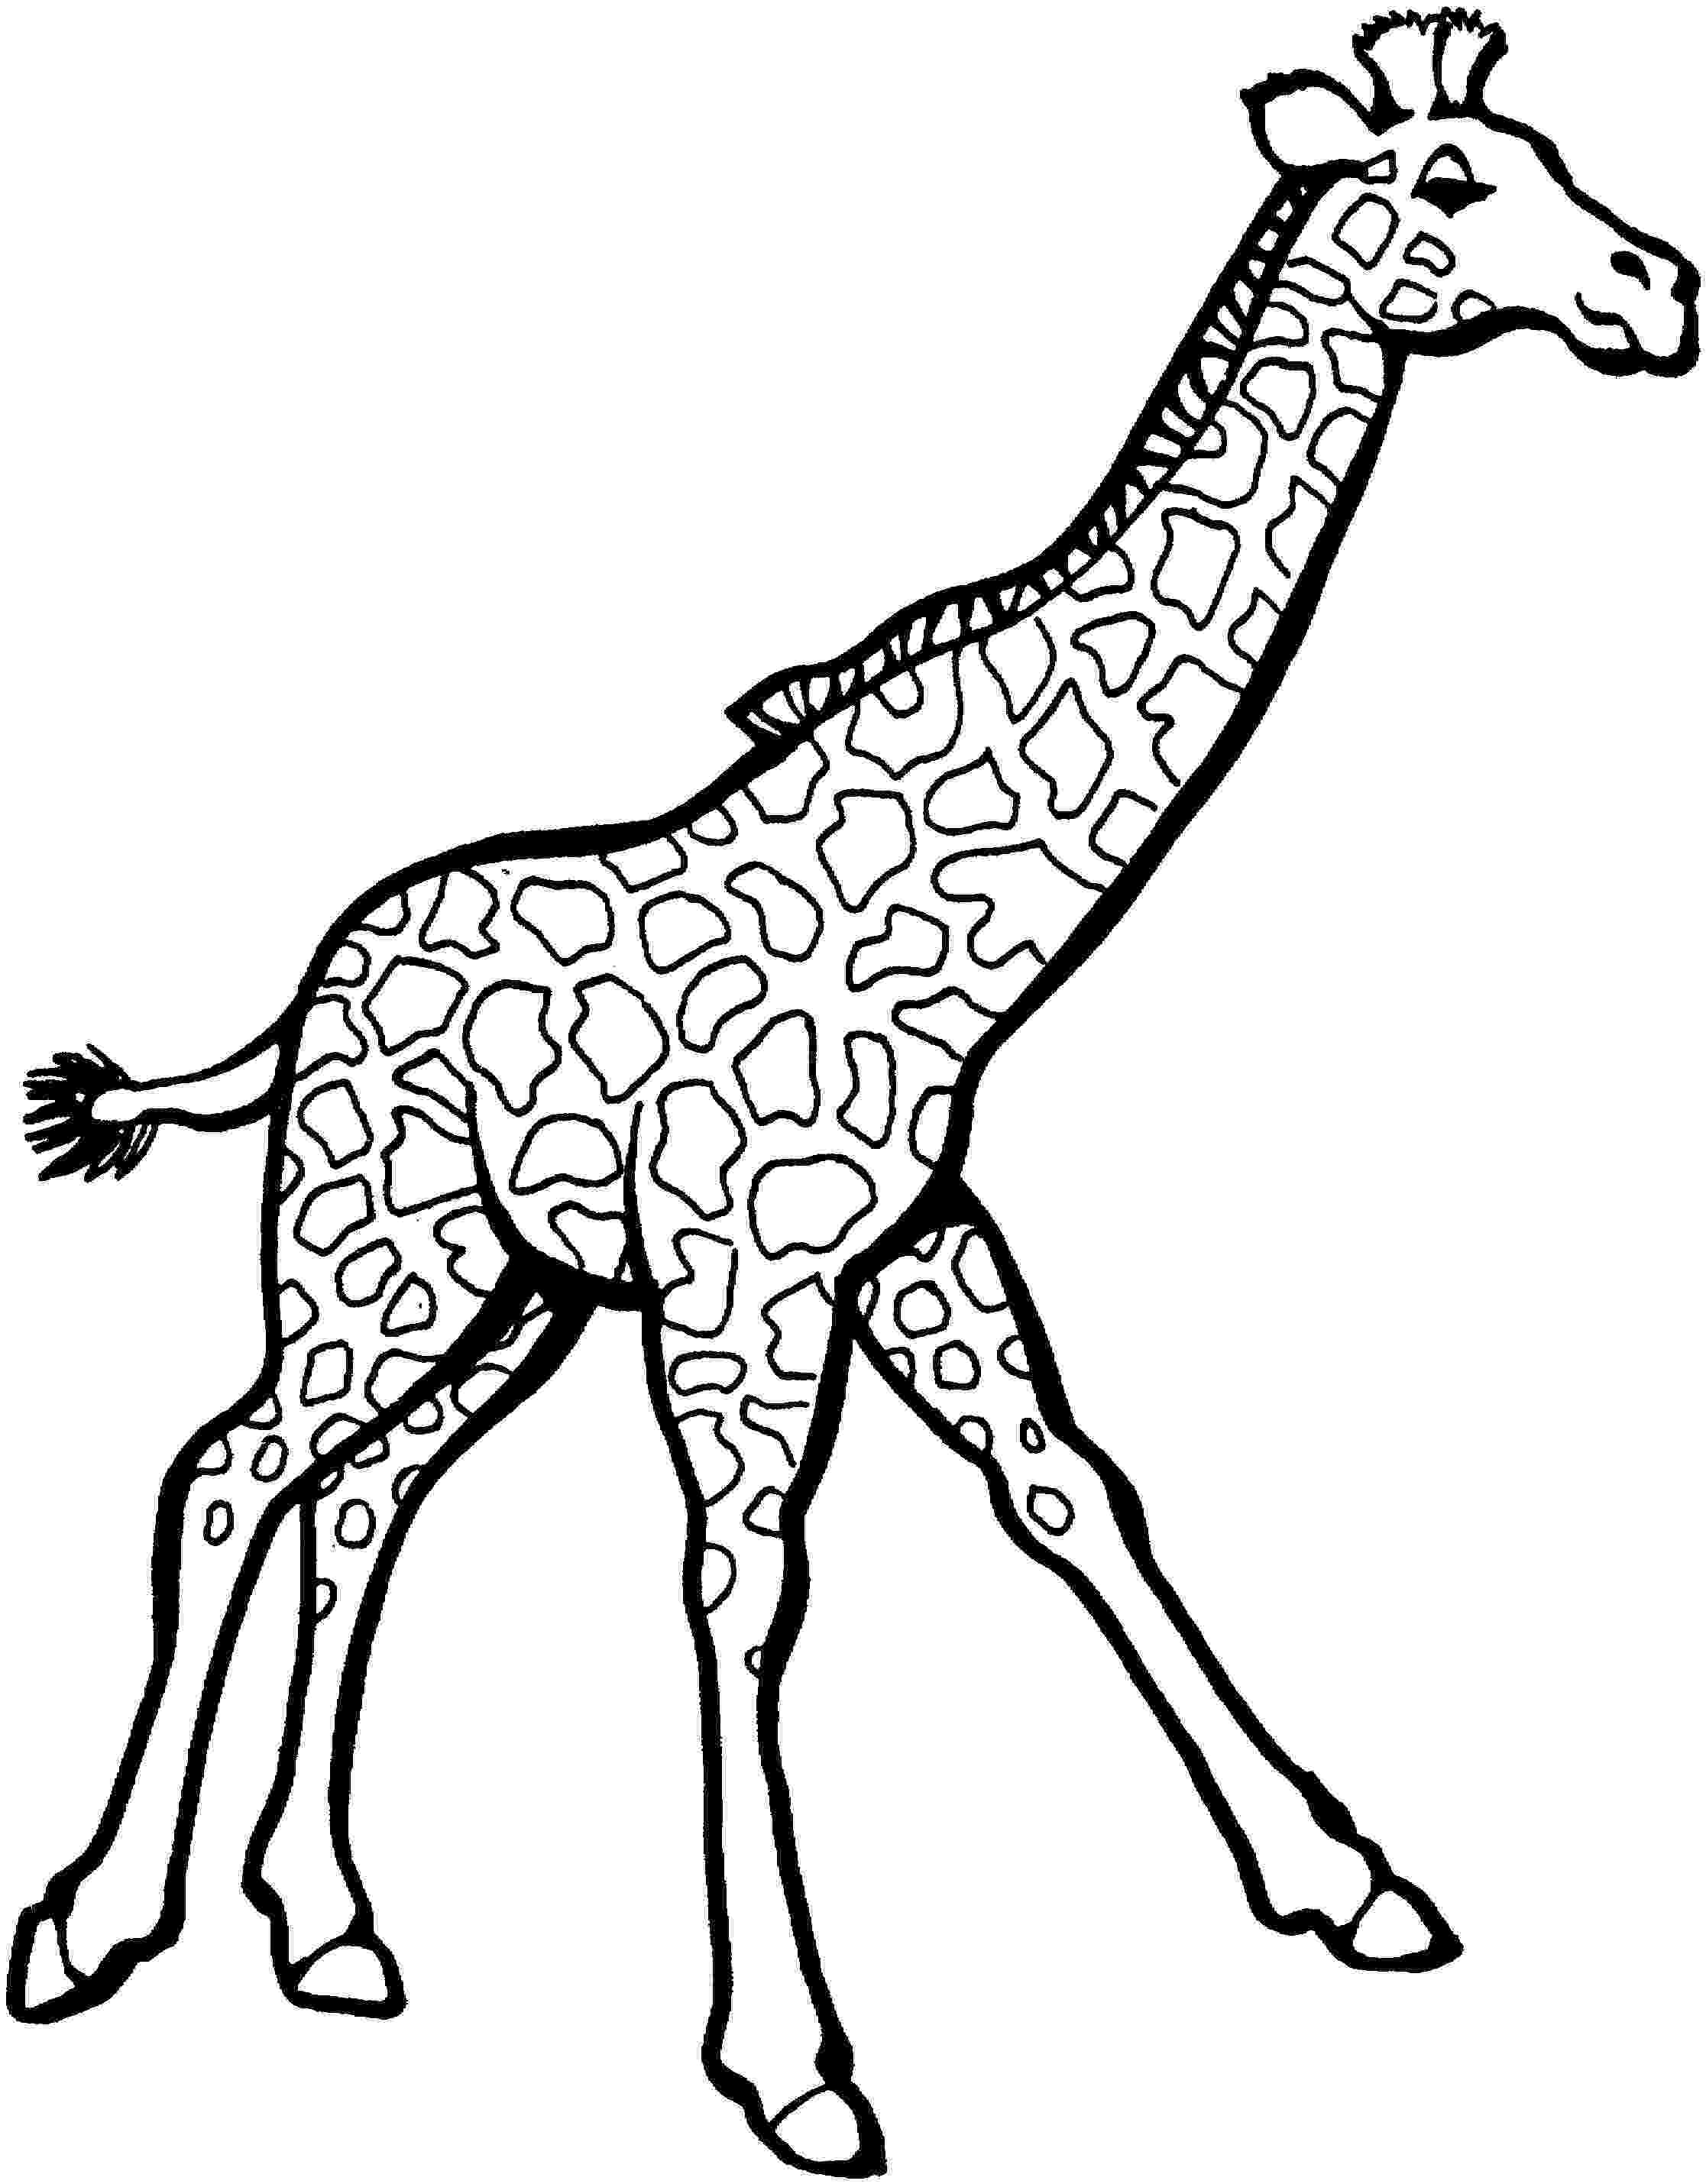 colouring pages for giraffe giraffe coloring pages coloring pages to print giraffe pages for colouring